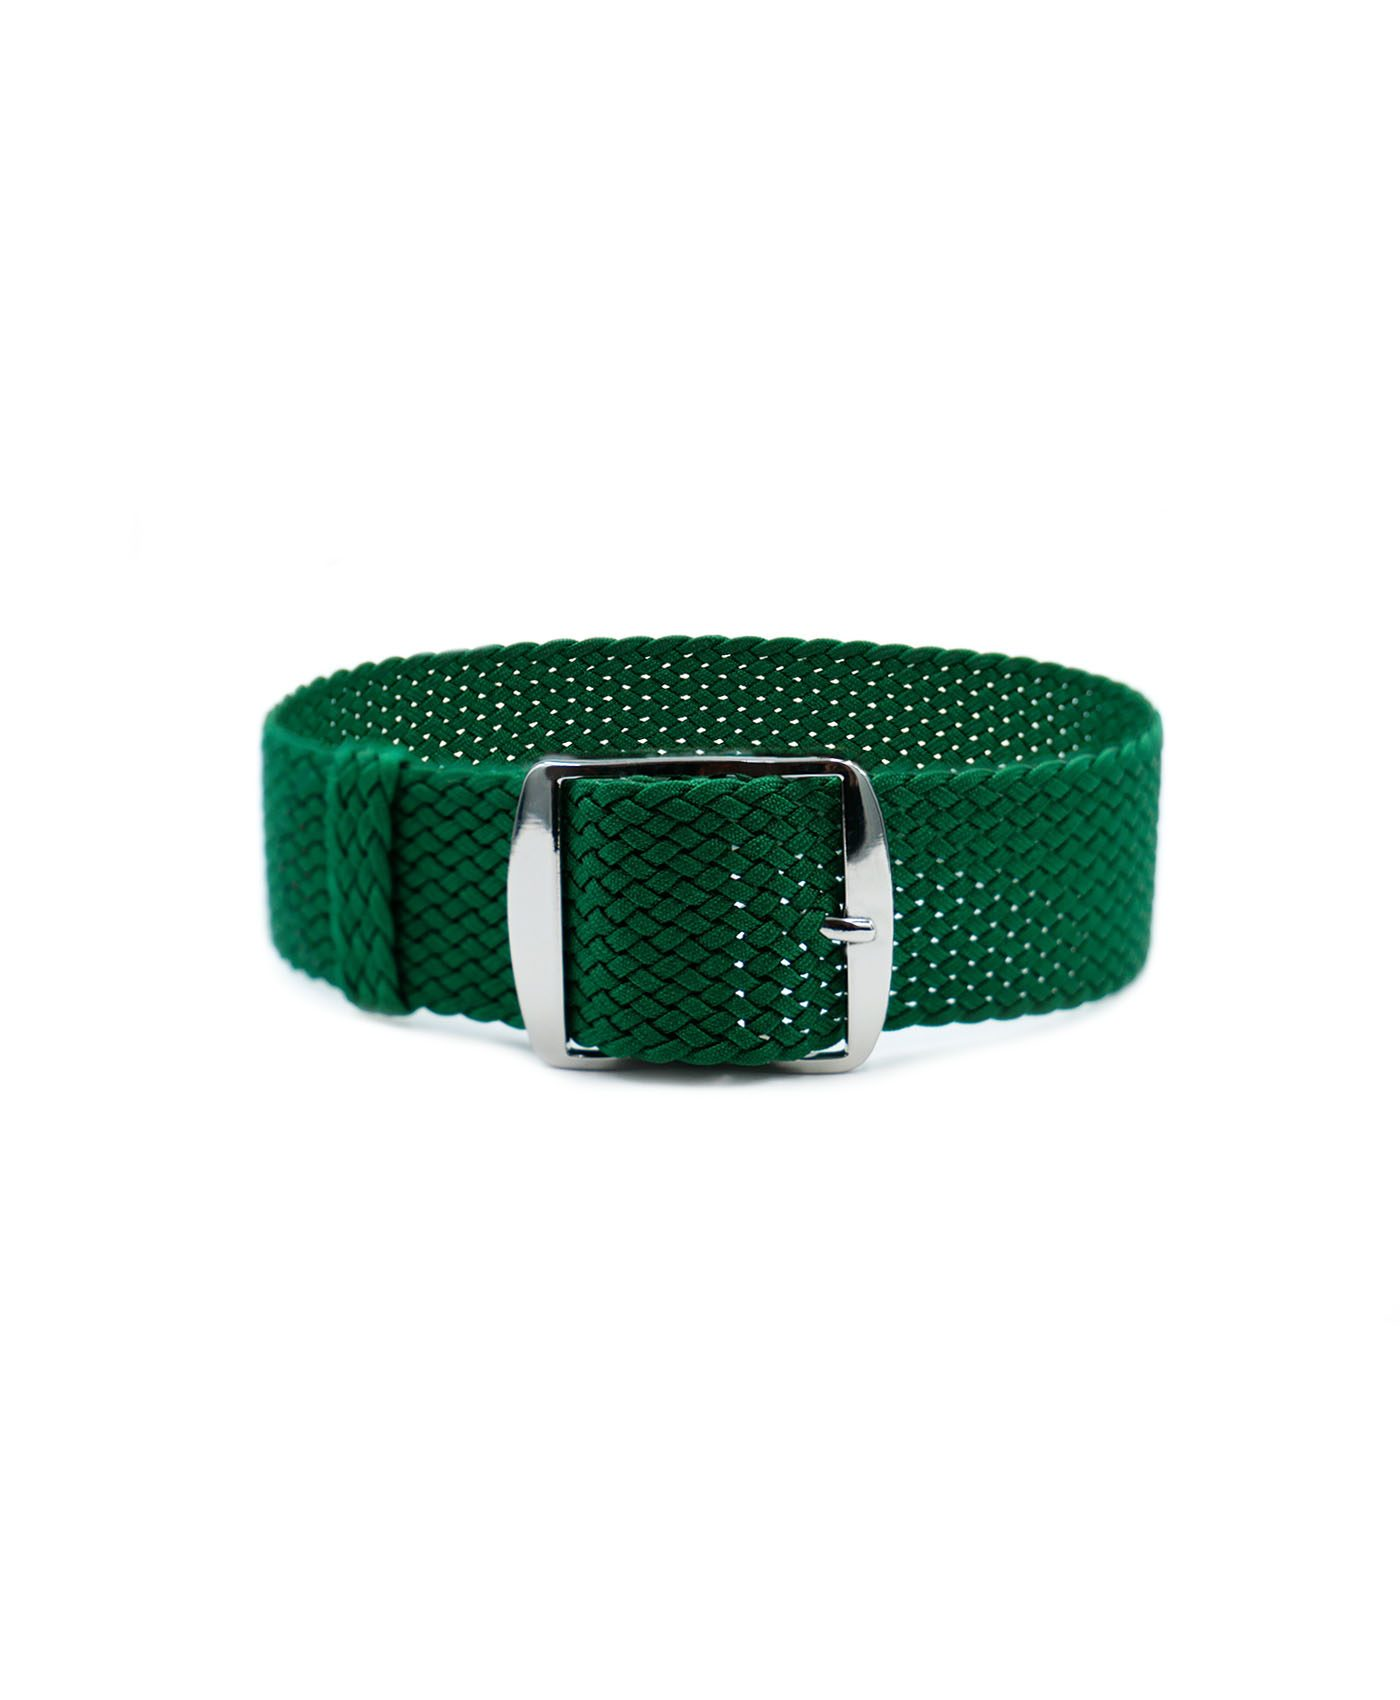 Watchbandit Premium Perlon Watch strap green